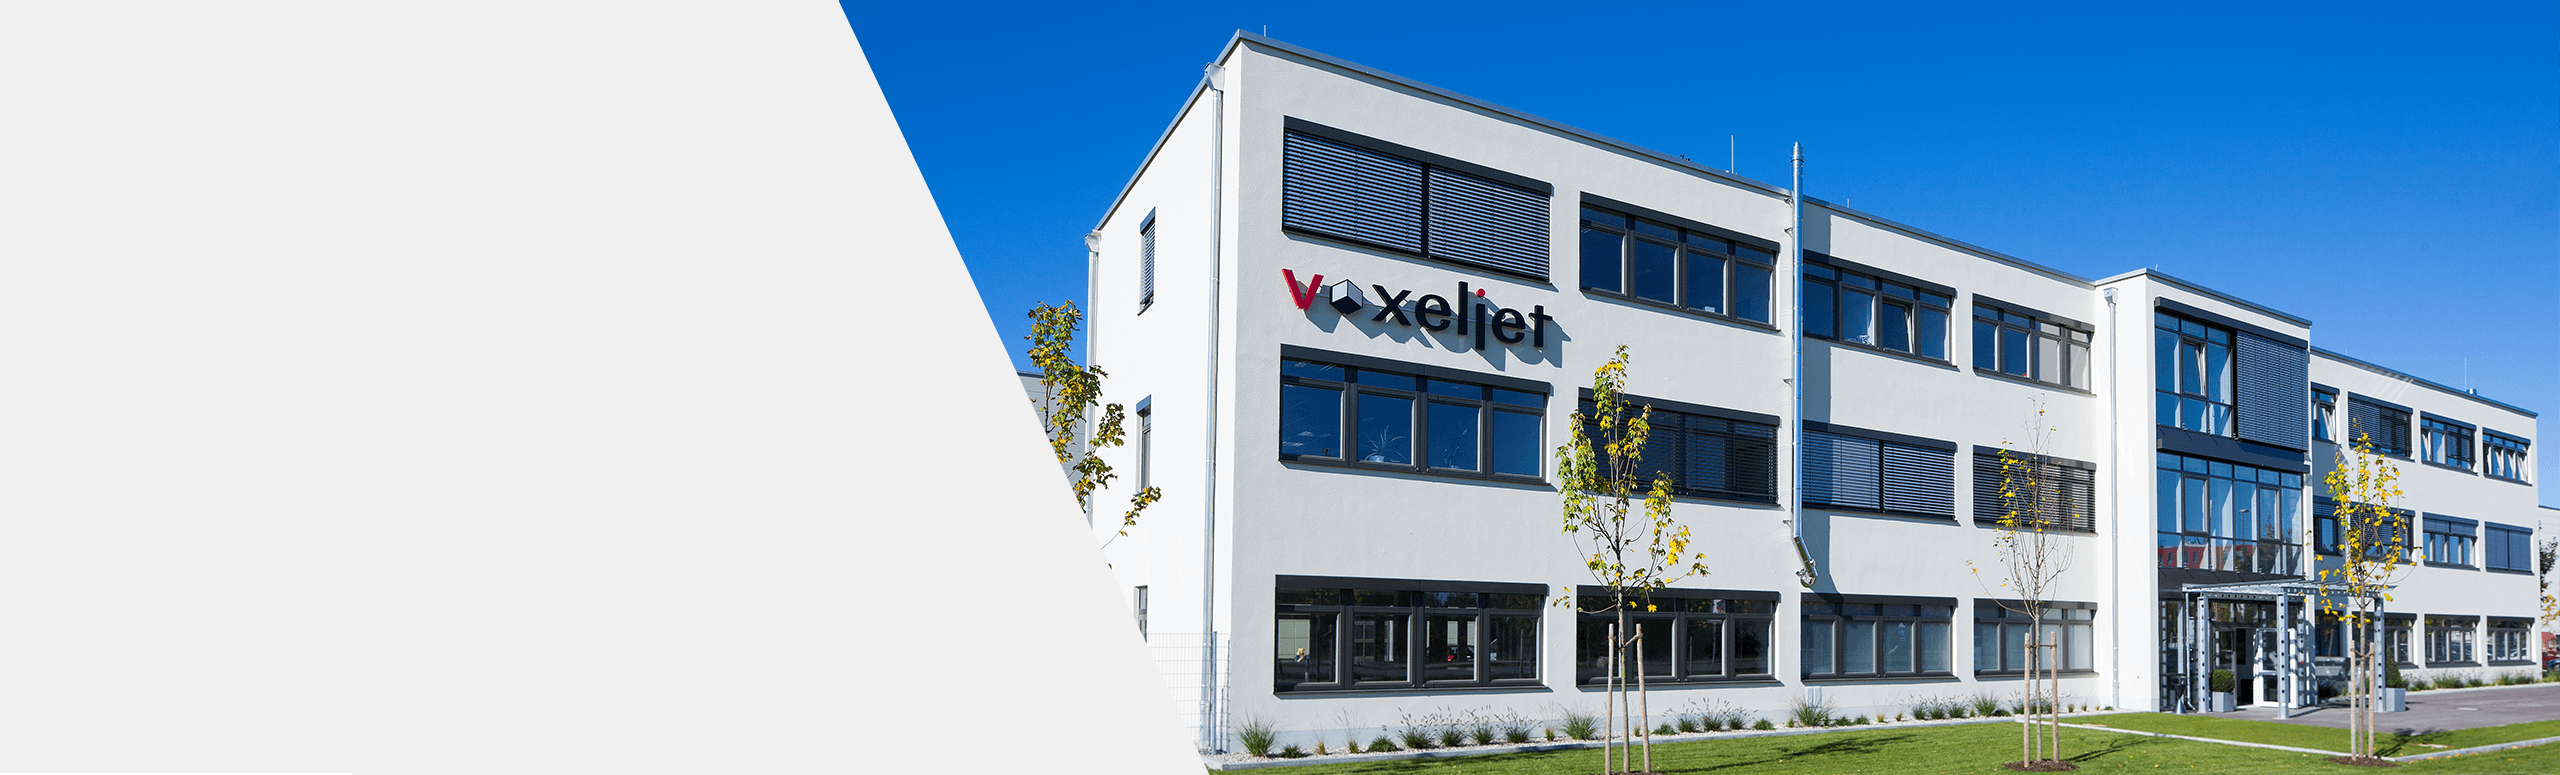 The voxeljet AG